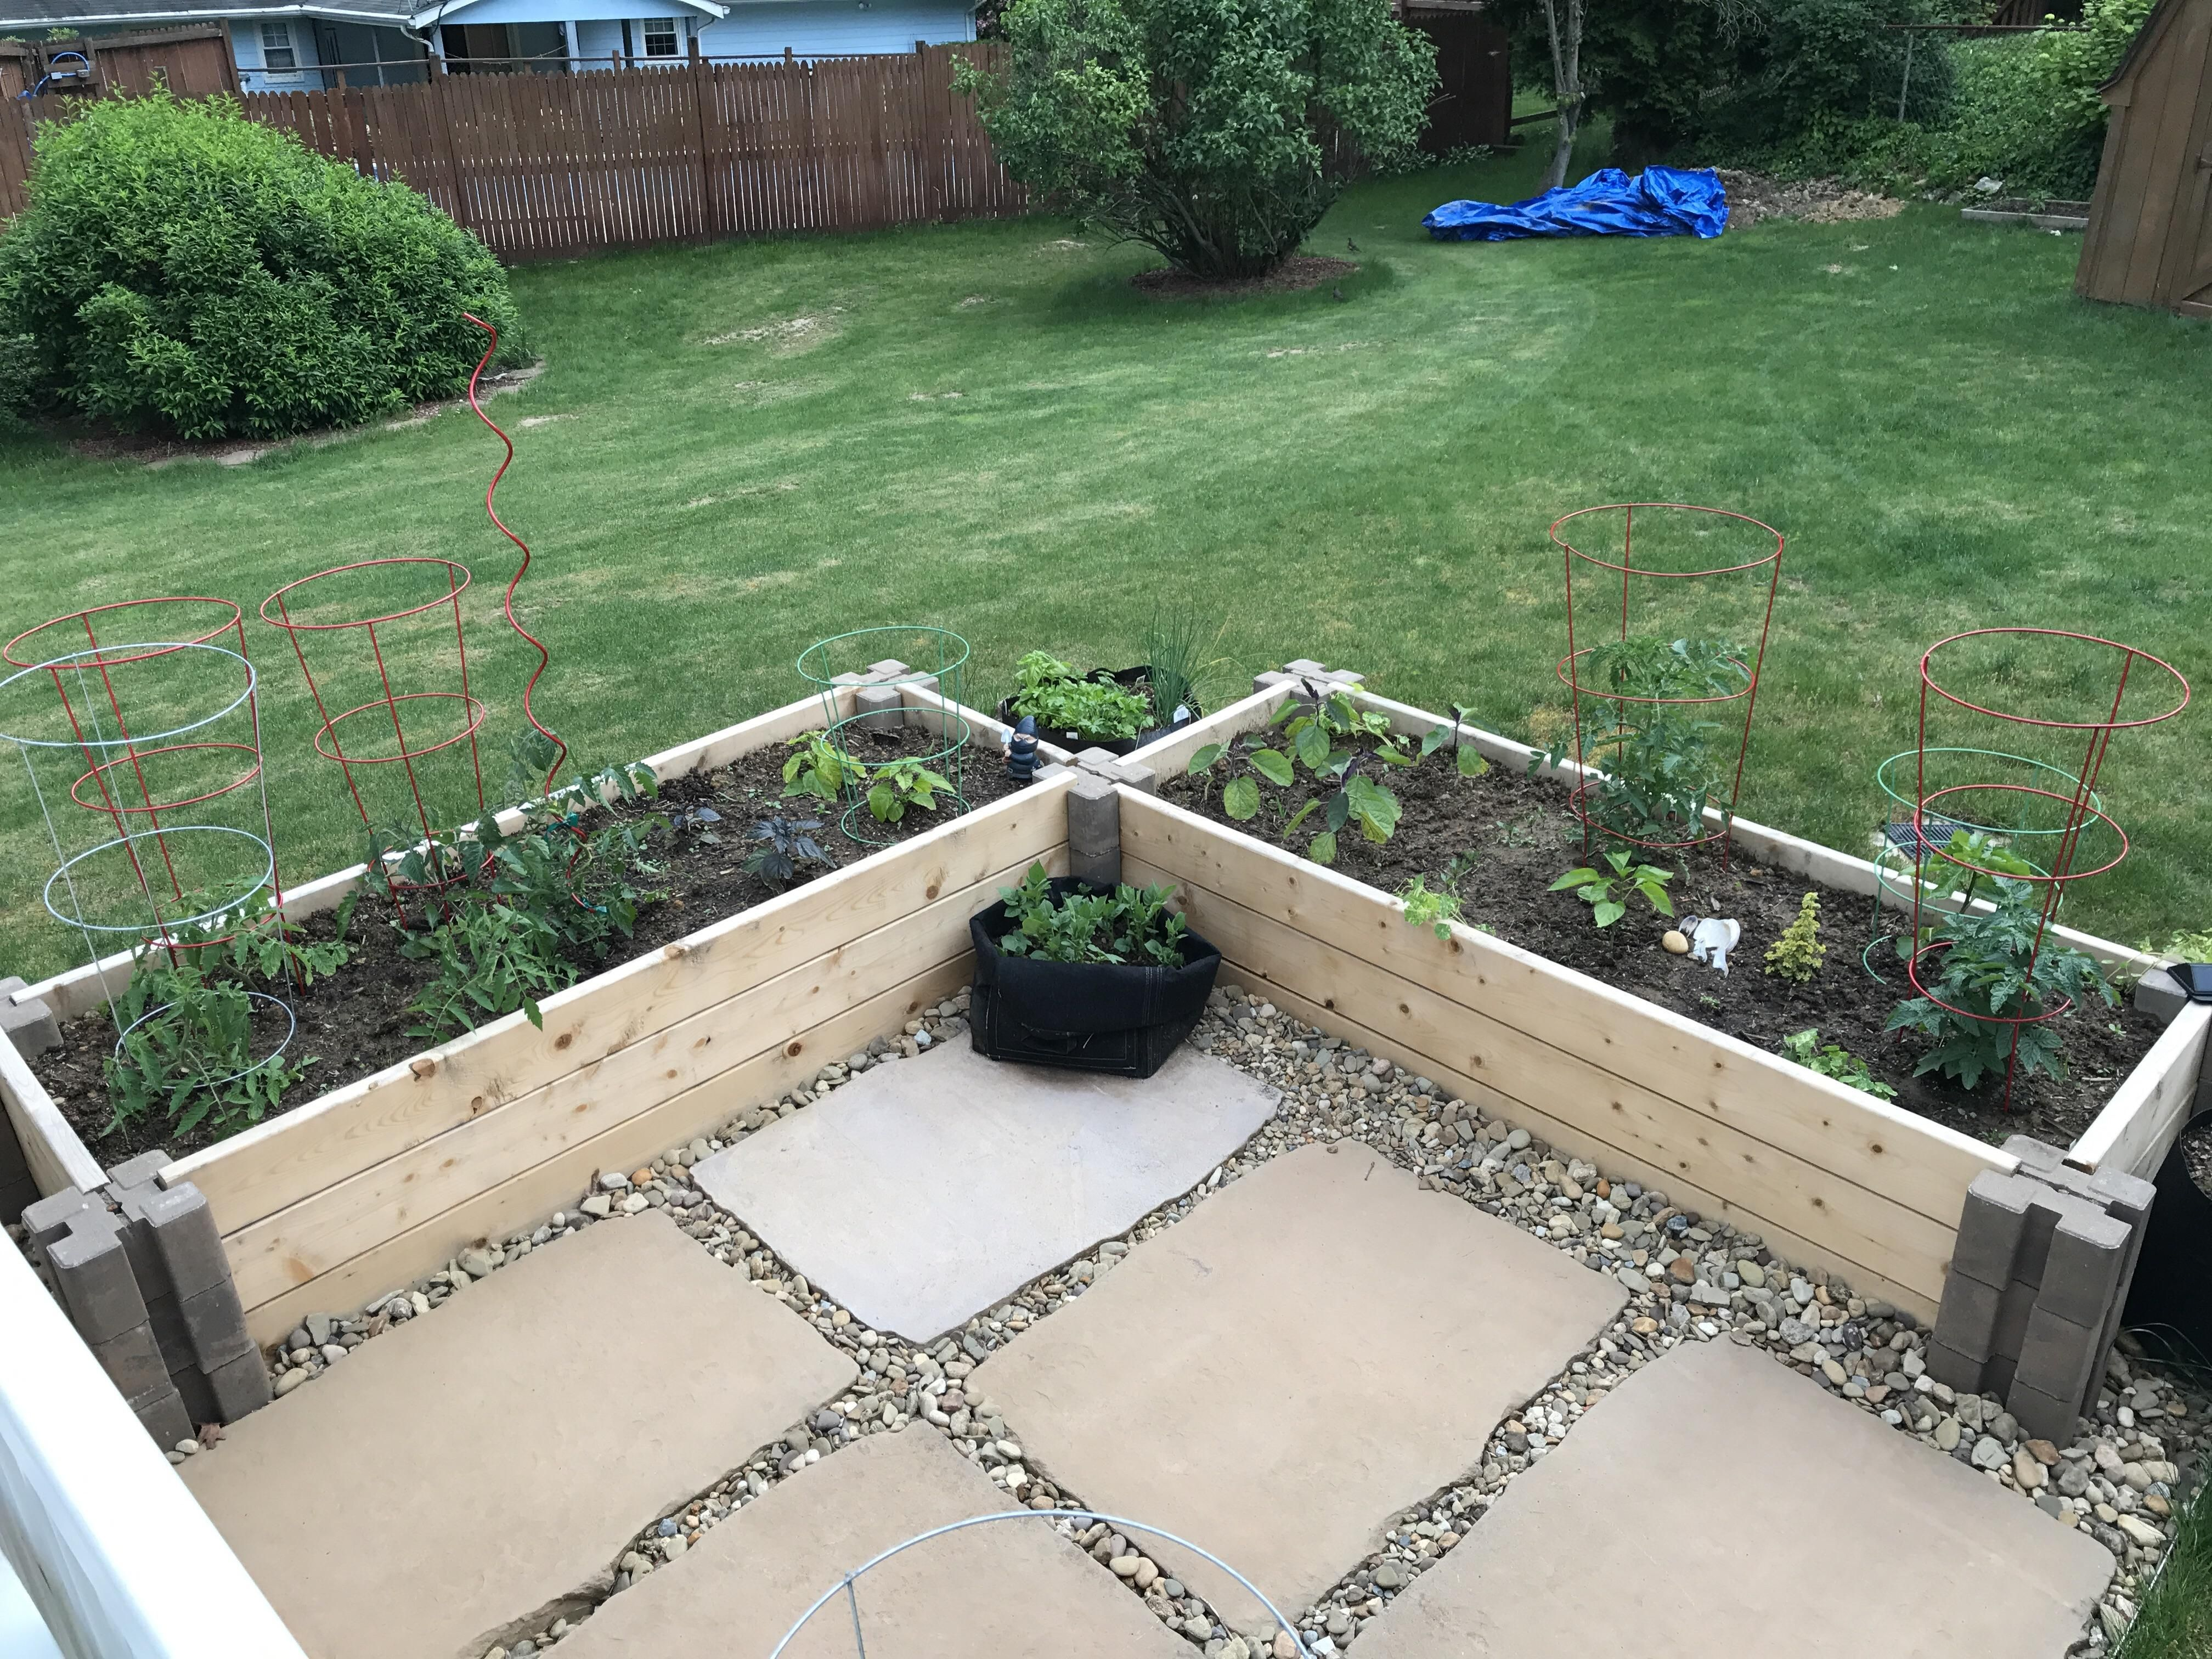 New raised beds using Home Depot planter wall blocks.